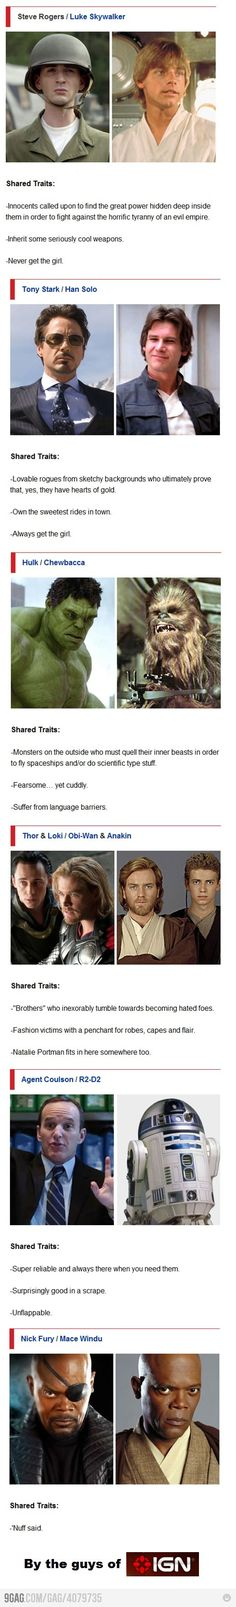 Avengers vs Star Wars... Funniest thing ever!!